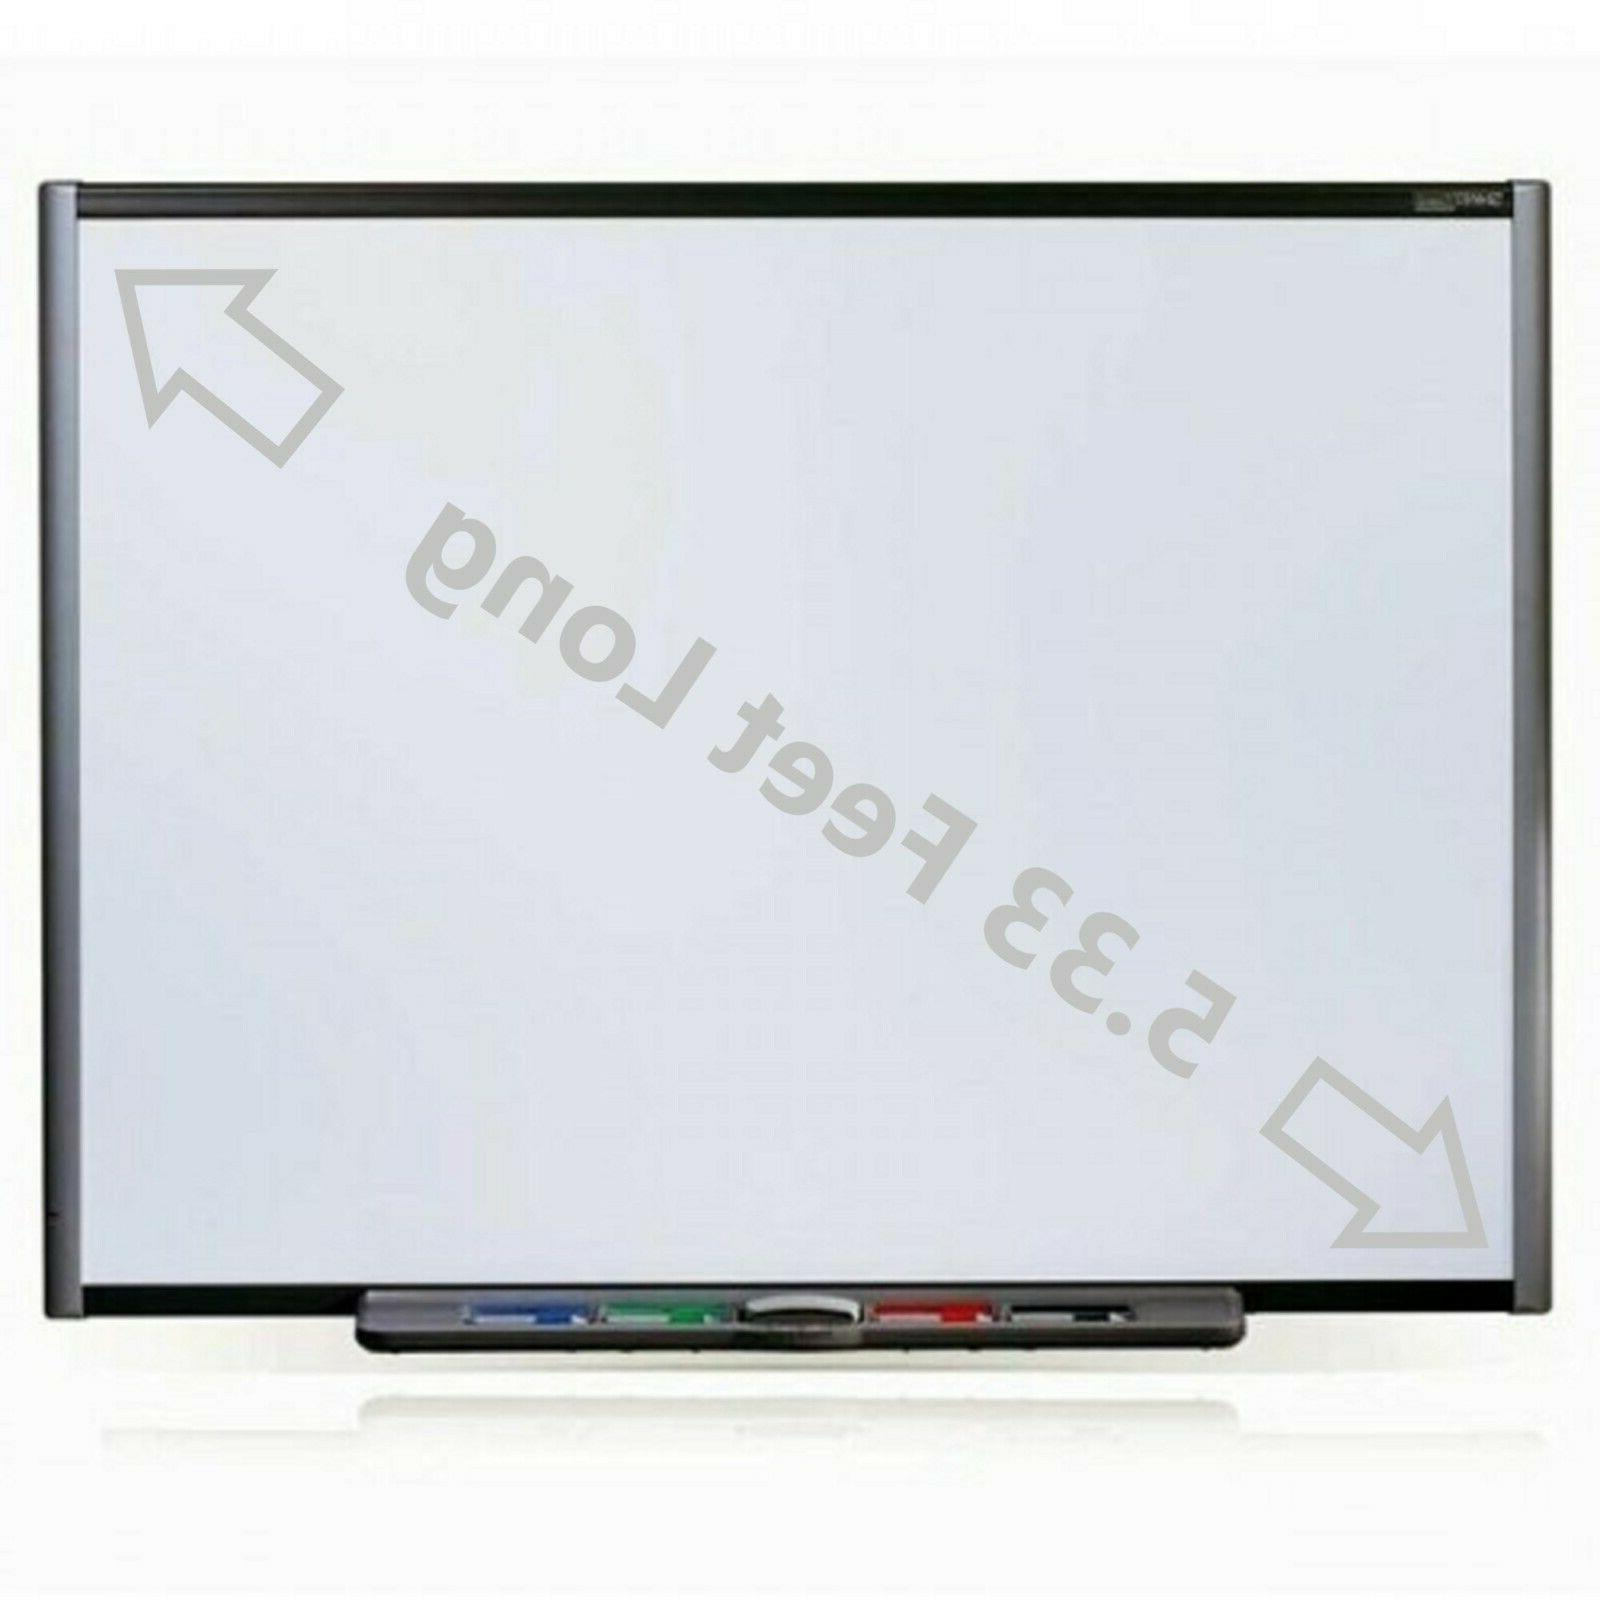 Interactive SB660 and Epson projector 470W*